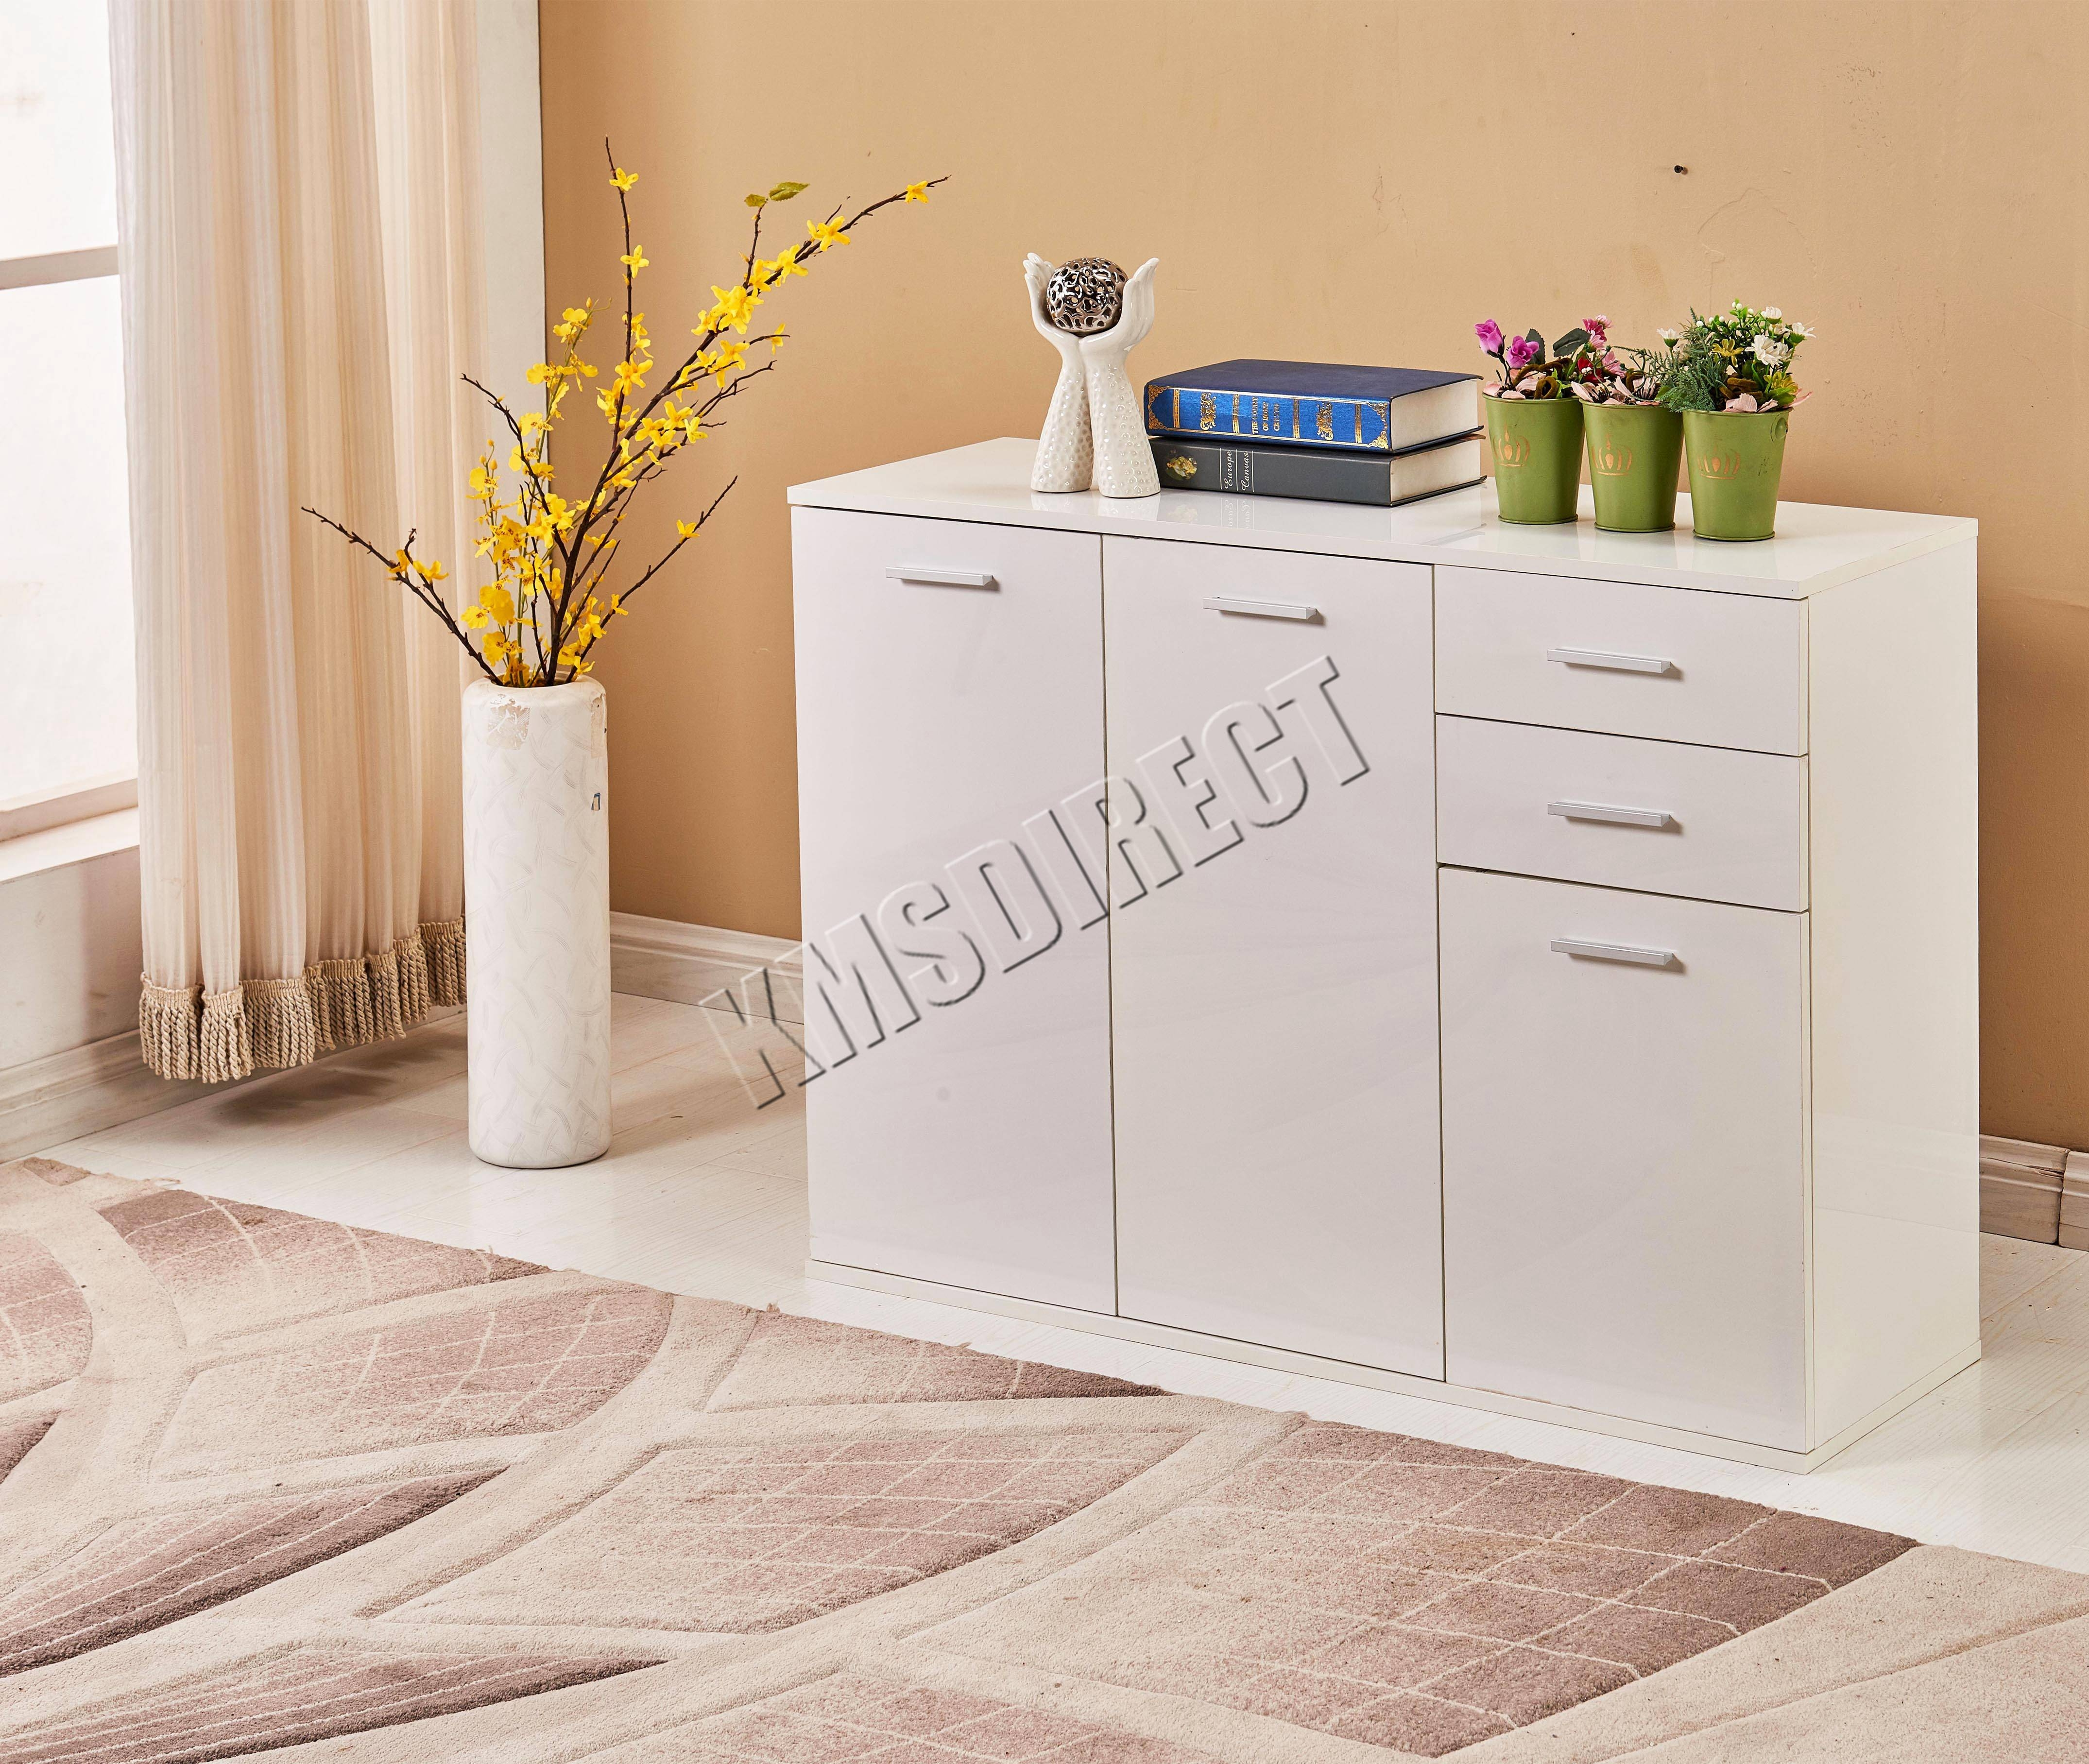 Foxhunter White High Gloss Cabinet Unit Sideboard 2 Drawers 2/3 inside High Gloss Sideboards (Image 13 of 30)